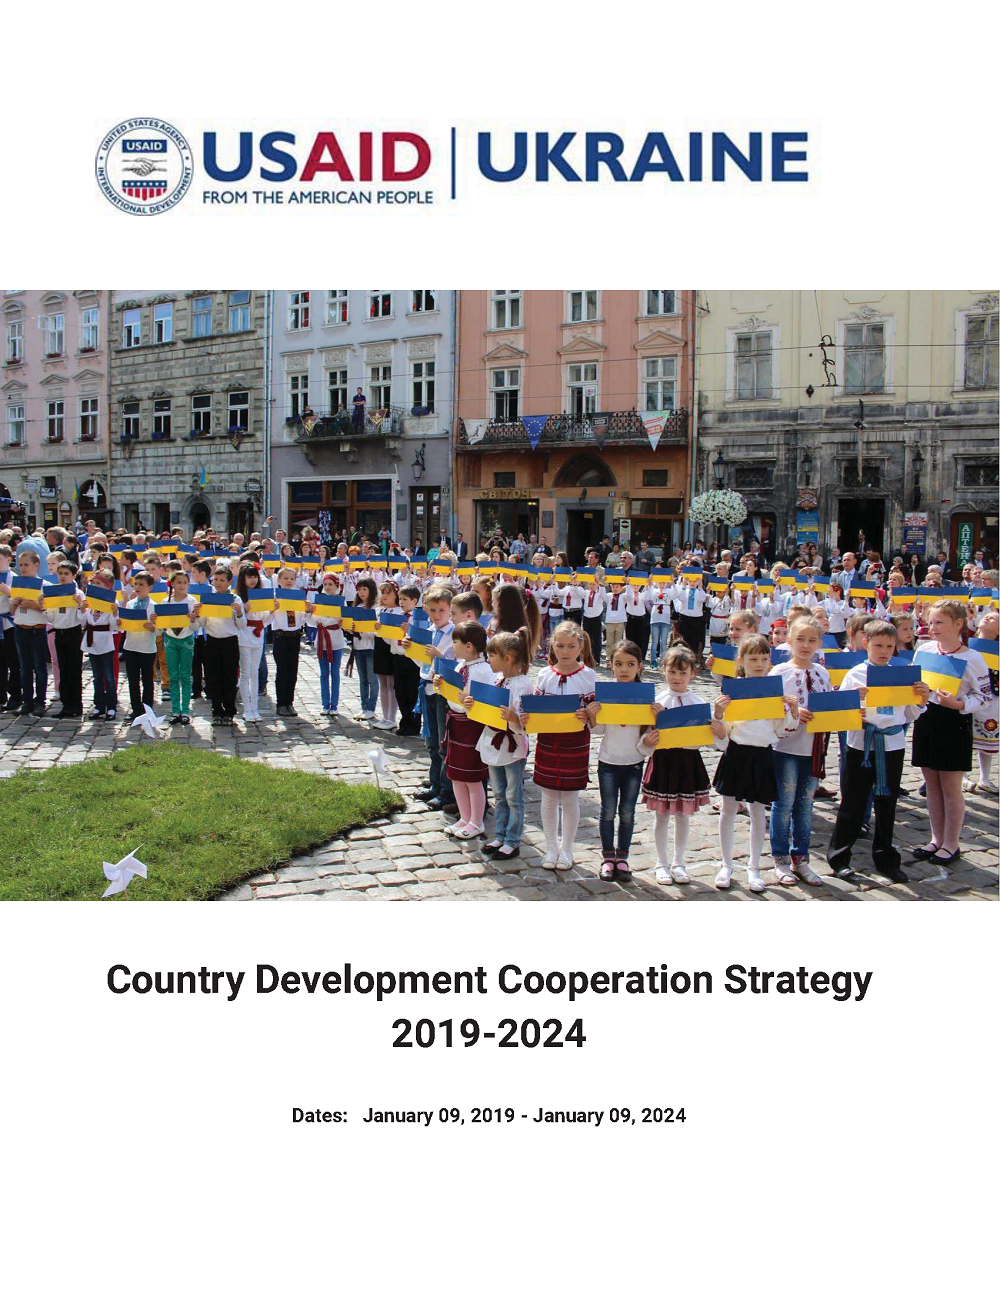 Ukraine Country Development Cooperation Strategy 2019-2024